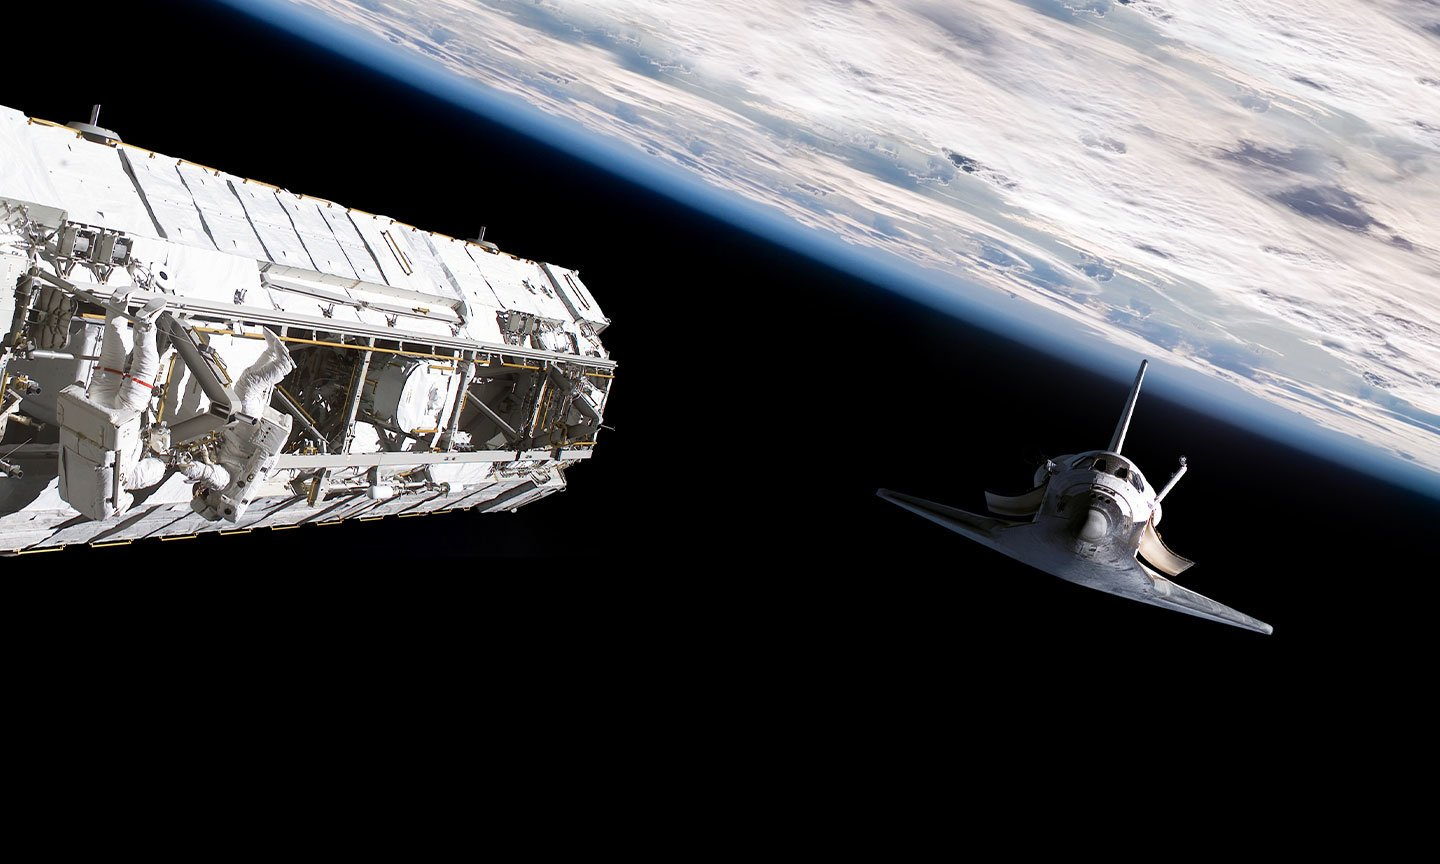 Space dock with space shuttle and astronauts